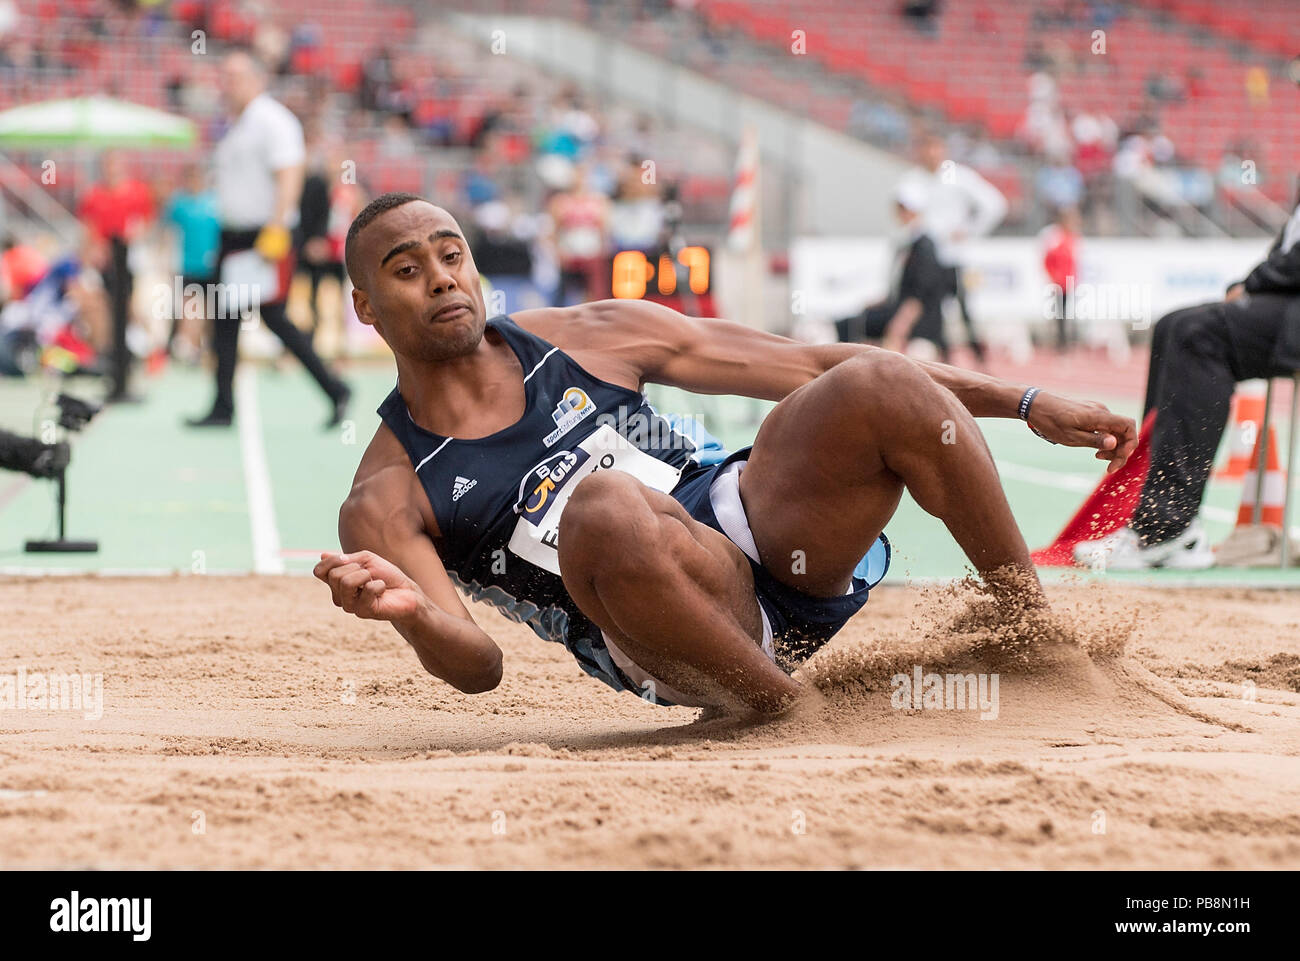 Nuremberg, Deutschland. 21st July, 2018. Ituah ENAHORO (LAV Bayer Uerdingen/Dormagen) Action, final long jump of the men on 21.07.2018. German Athletics Championships 2018, from 20.07. - 22.07.2018 in Nuernberg/Germany. | usage worldwide Credit: dpa/Alamy Live News - Stock Image